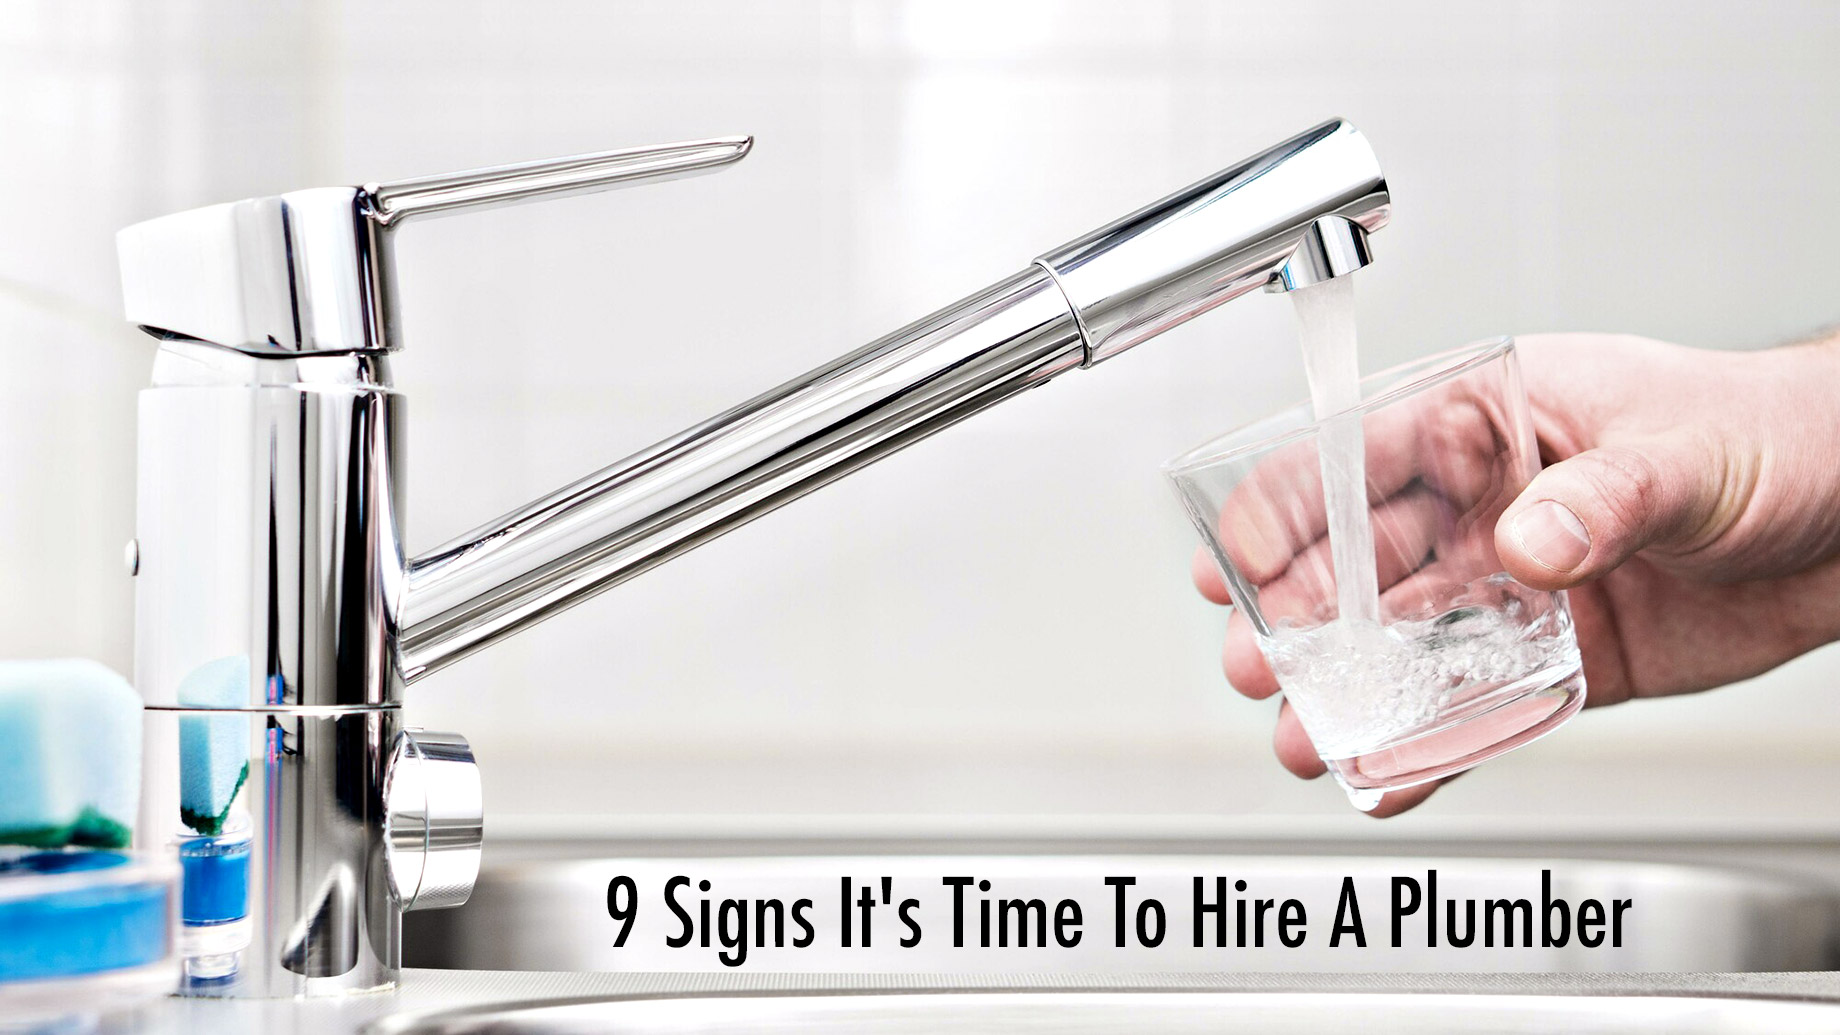 Home Repairs - 9 Signs It's Time To Hire A Plumber